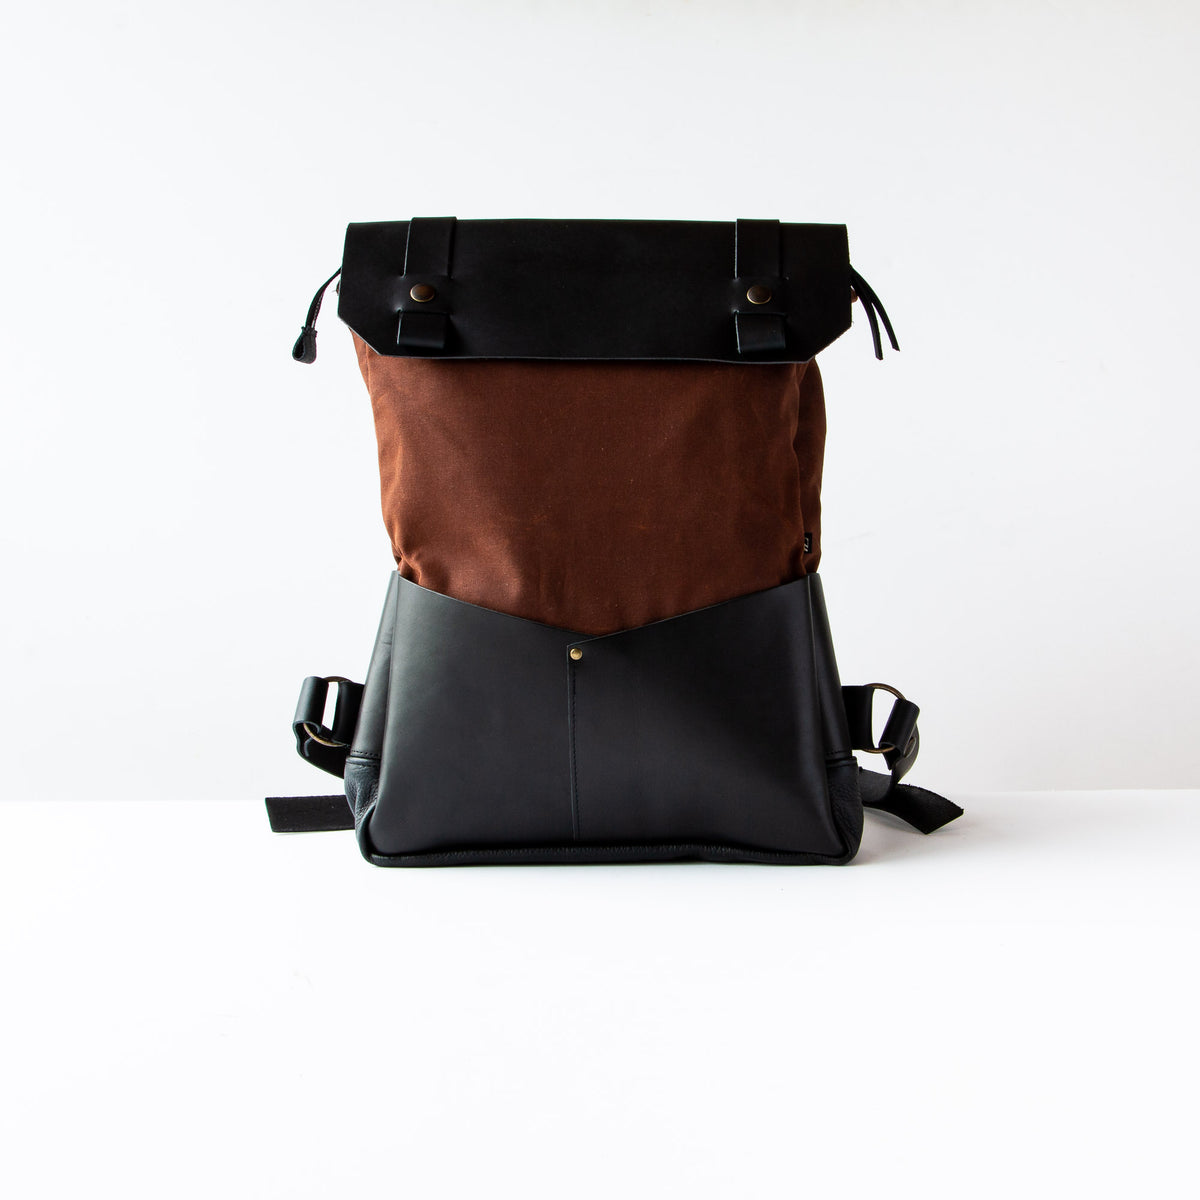 Andes - Handmade Laptop Backpack - Leather & Waxed Cotton - Sold by Chic & Basta